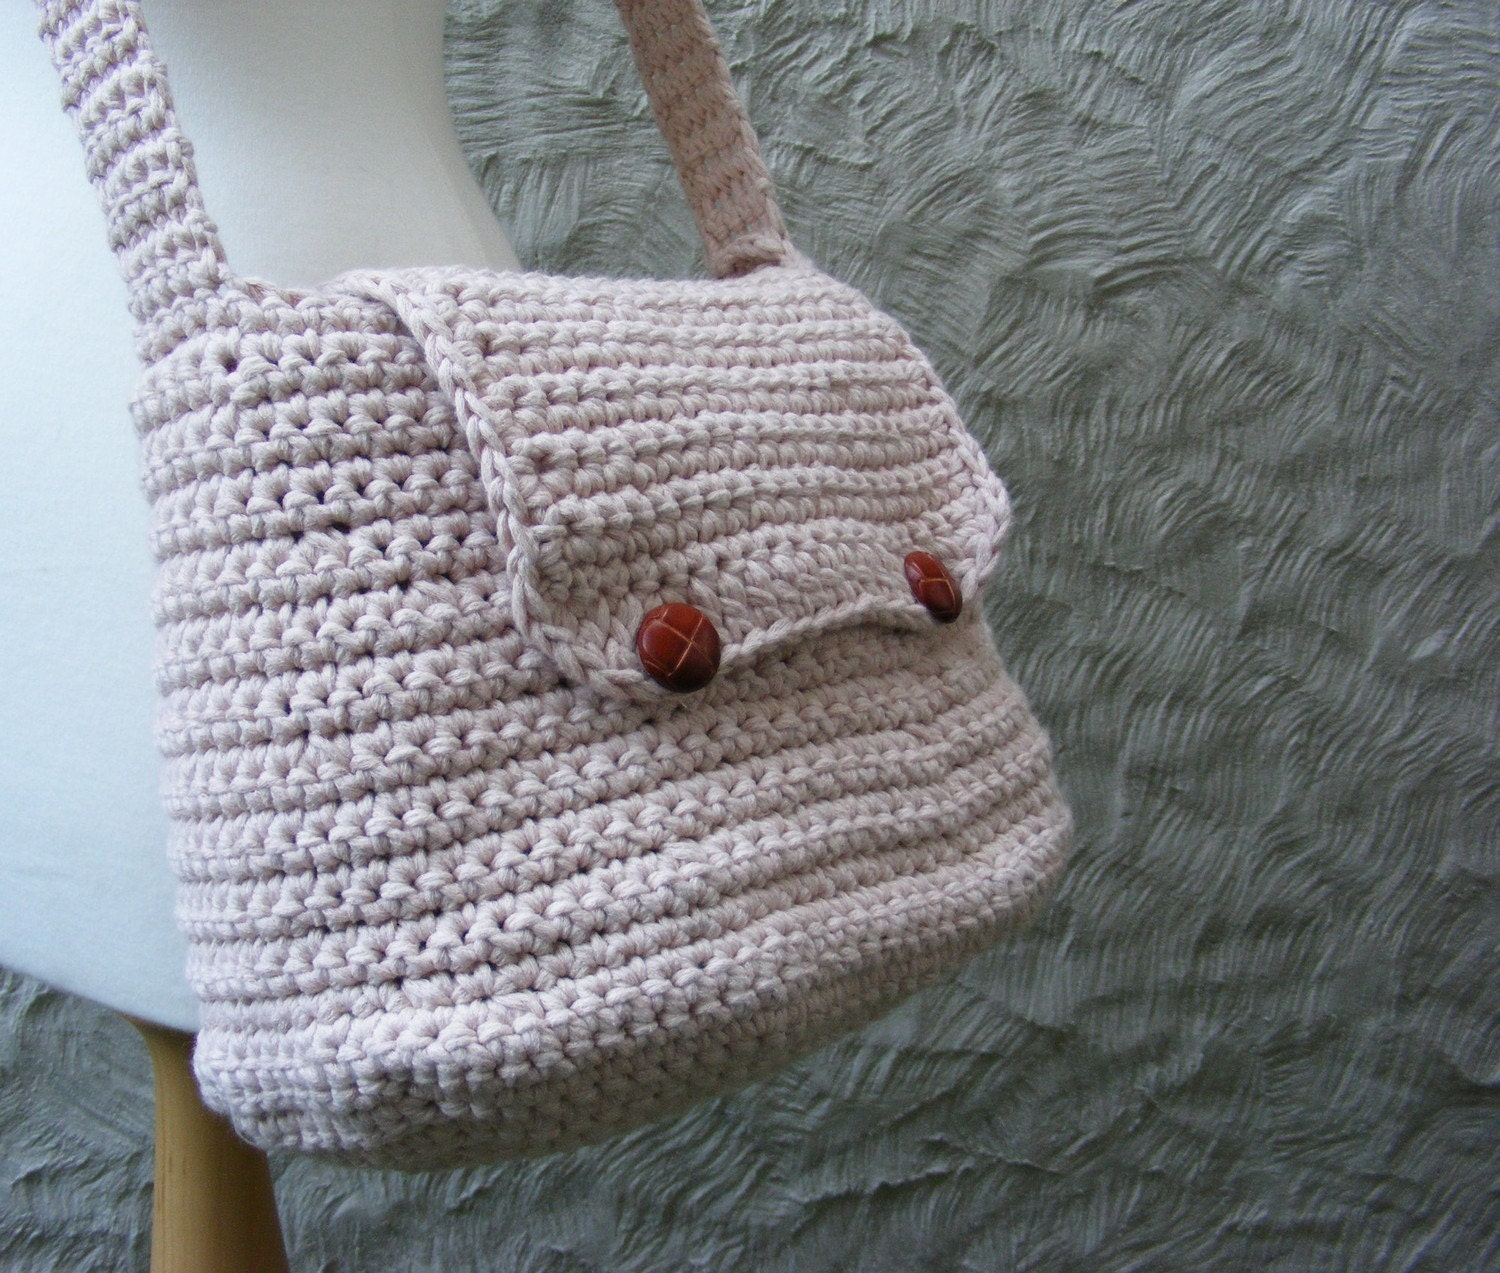 Knitting Needle Knitting Bag - Ravelry - a knit and crochet ...